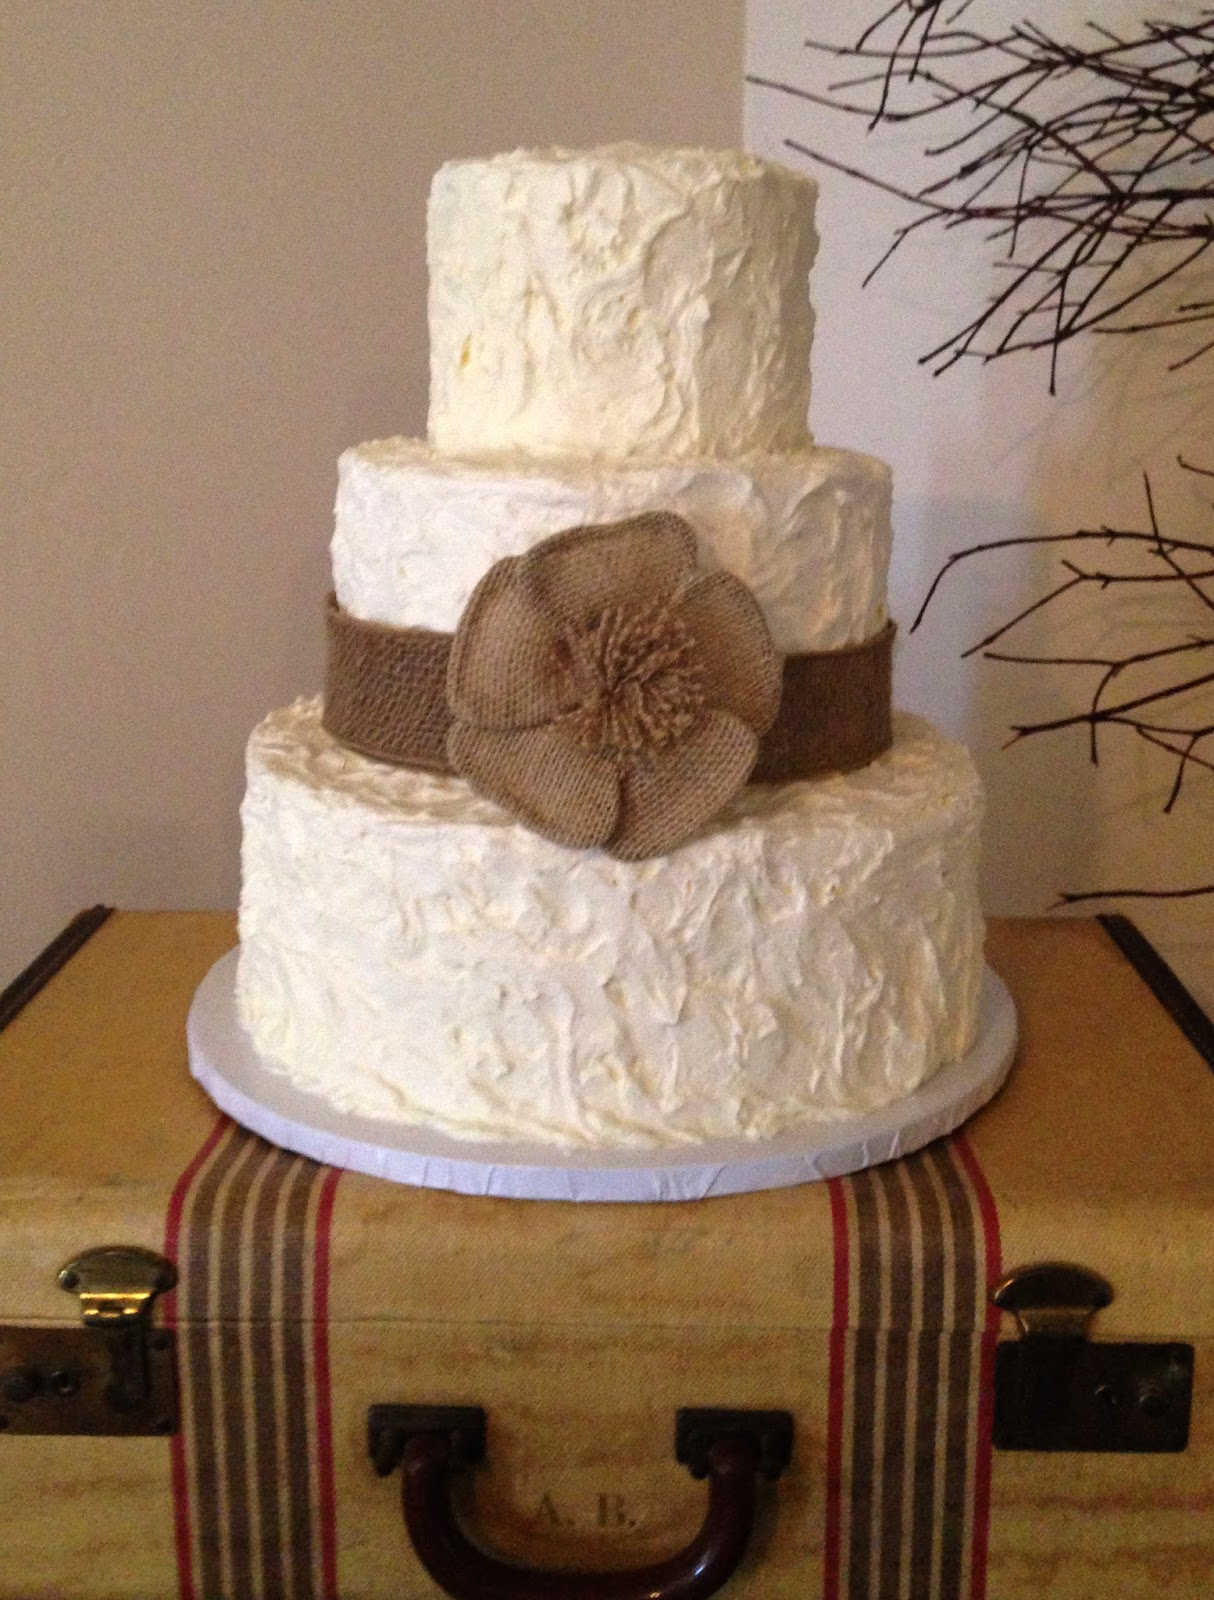 The cake market 3 tier all frosting wedding cake 3 tier all frosting wedding cake junglespirit Image collections